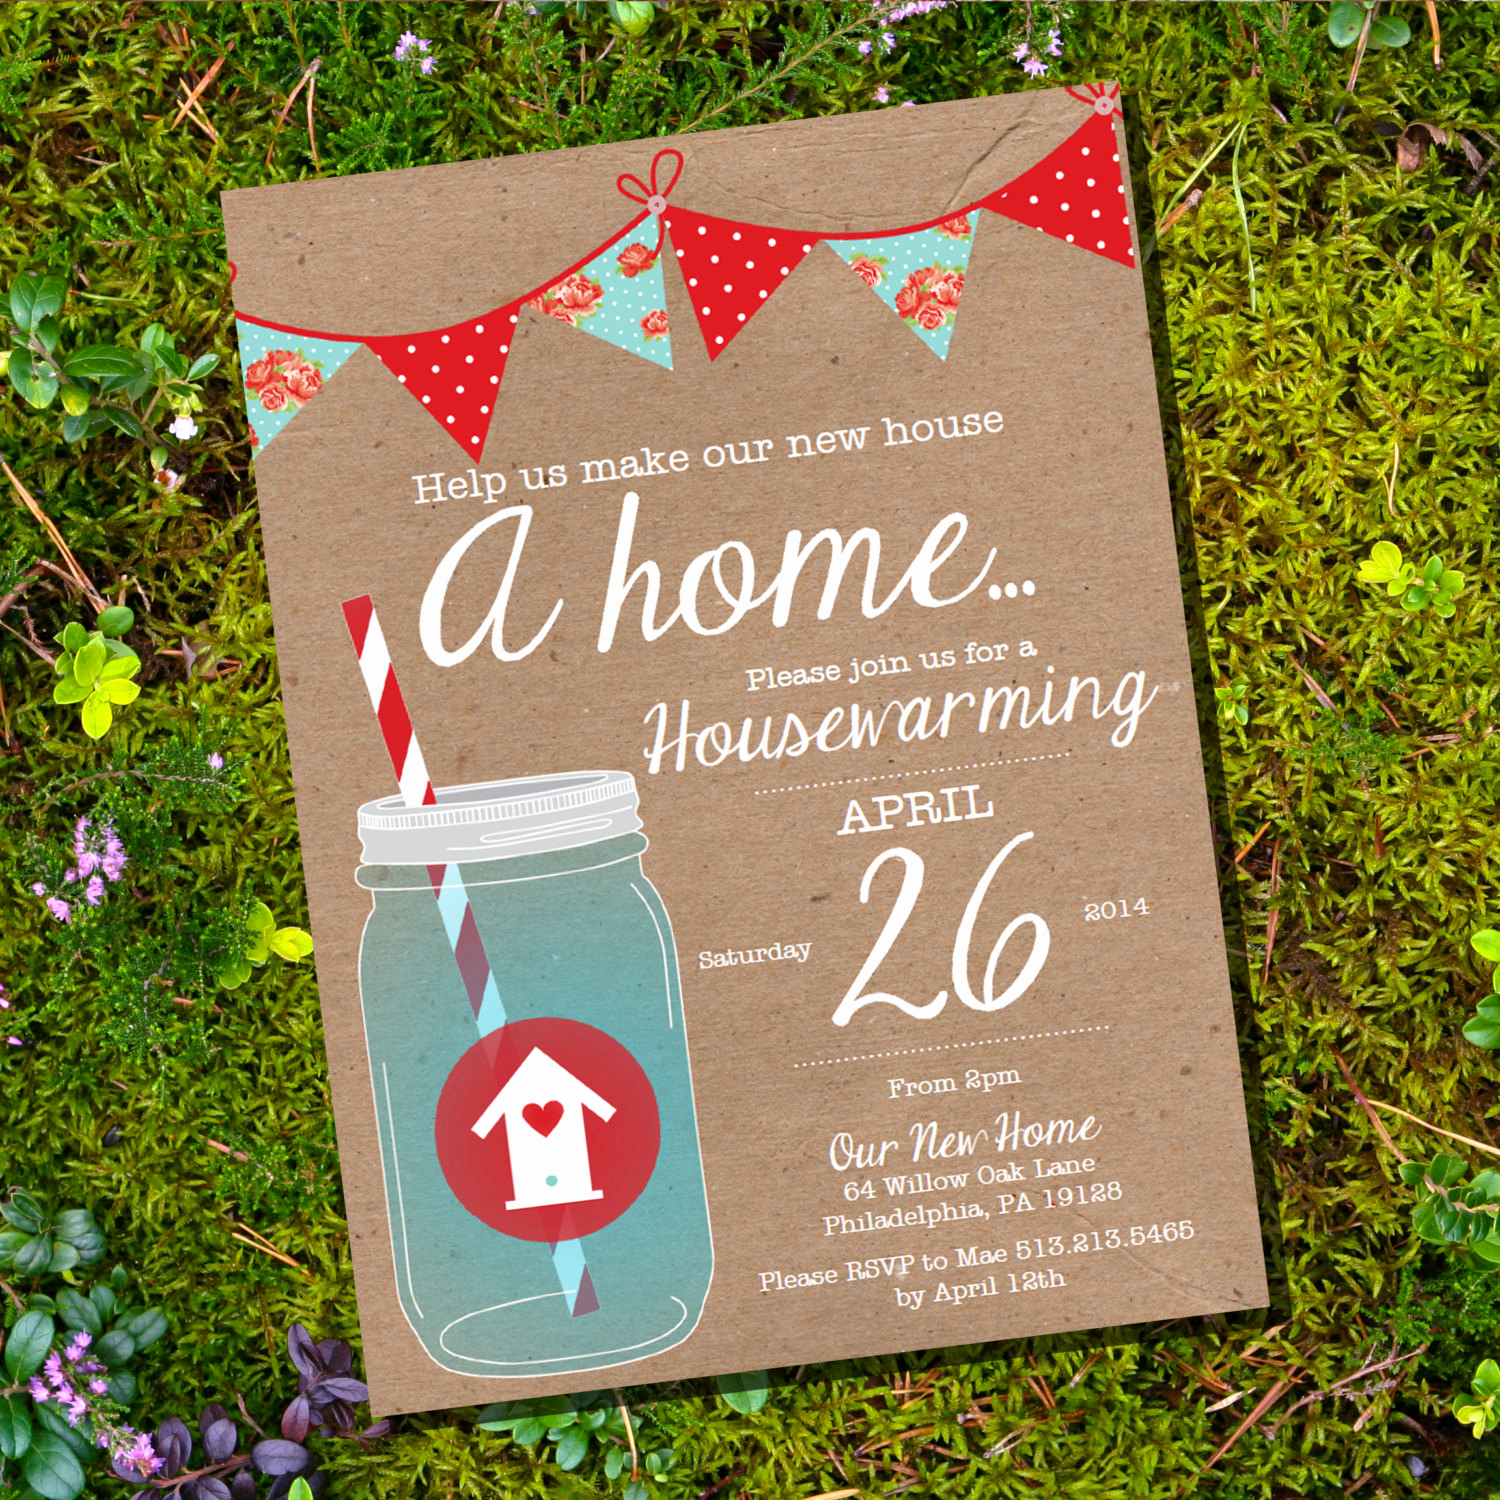 Housewarming Party Invitation Ideas Awesome Shabby Chic Housewarming Invitation Housewarming Party